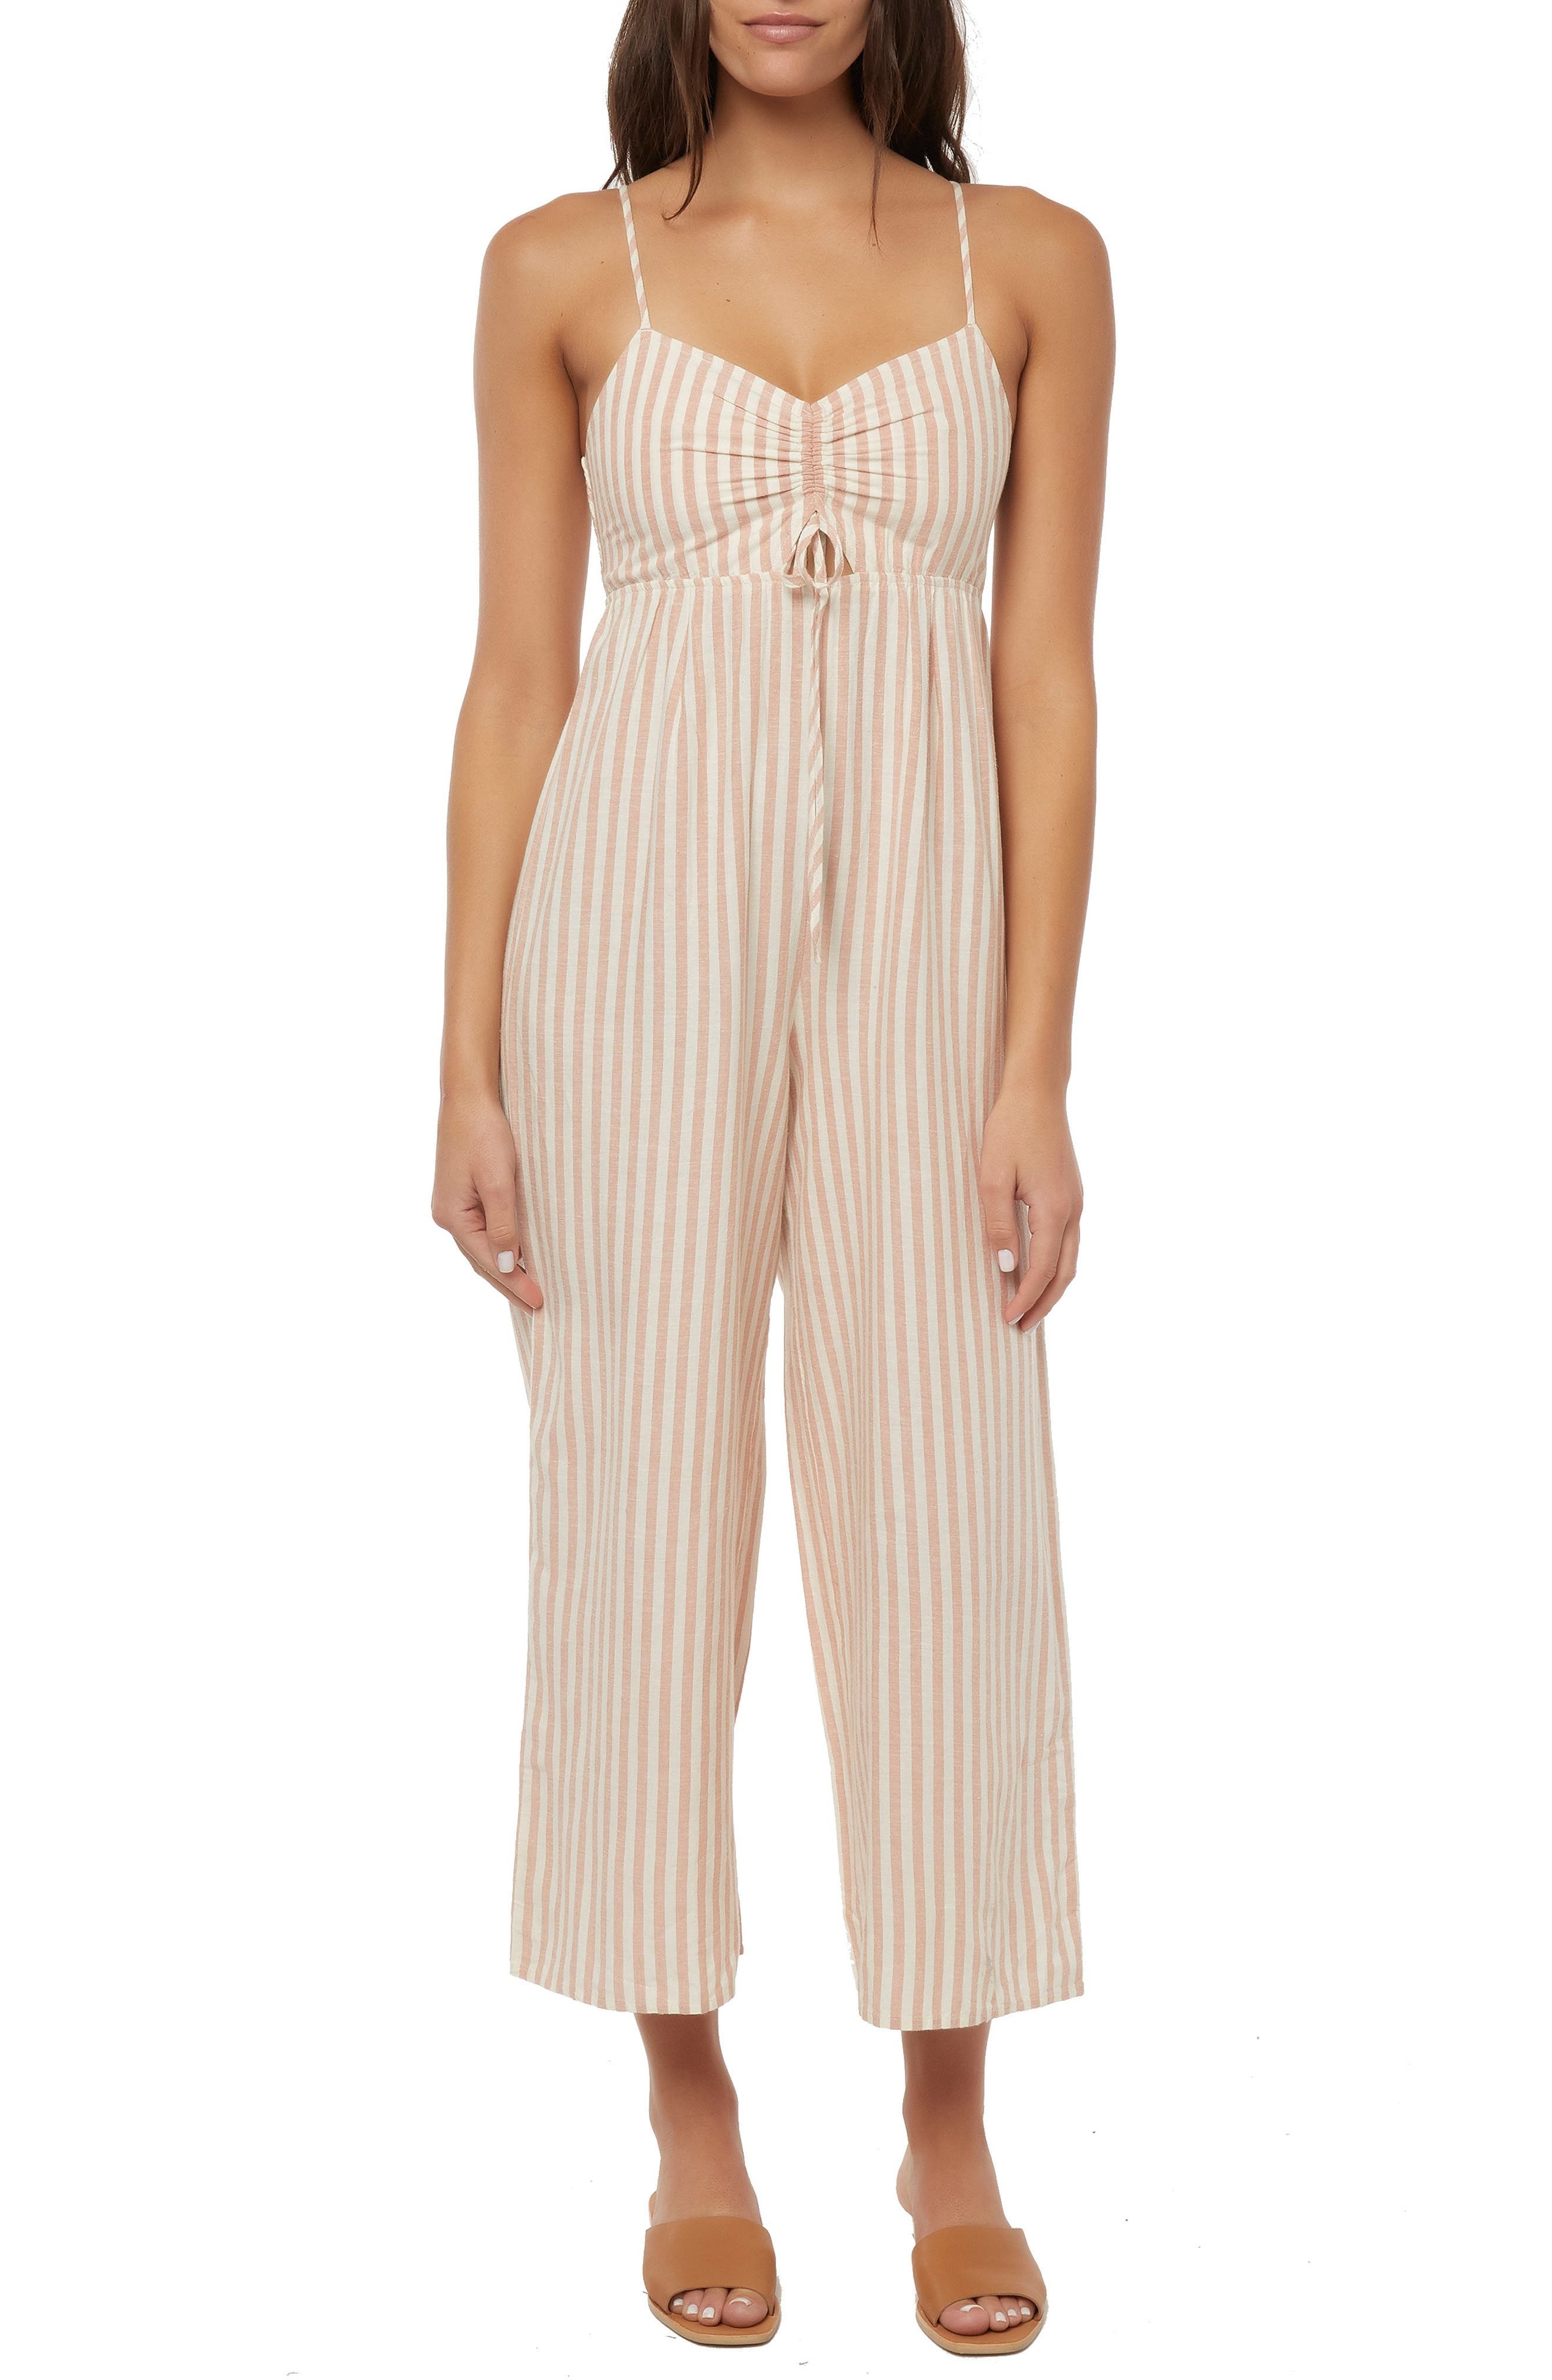 O'NEILL Anabella Stripe Ruched Jumpsuit, Main, color, NAKED